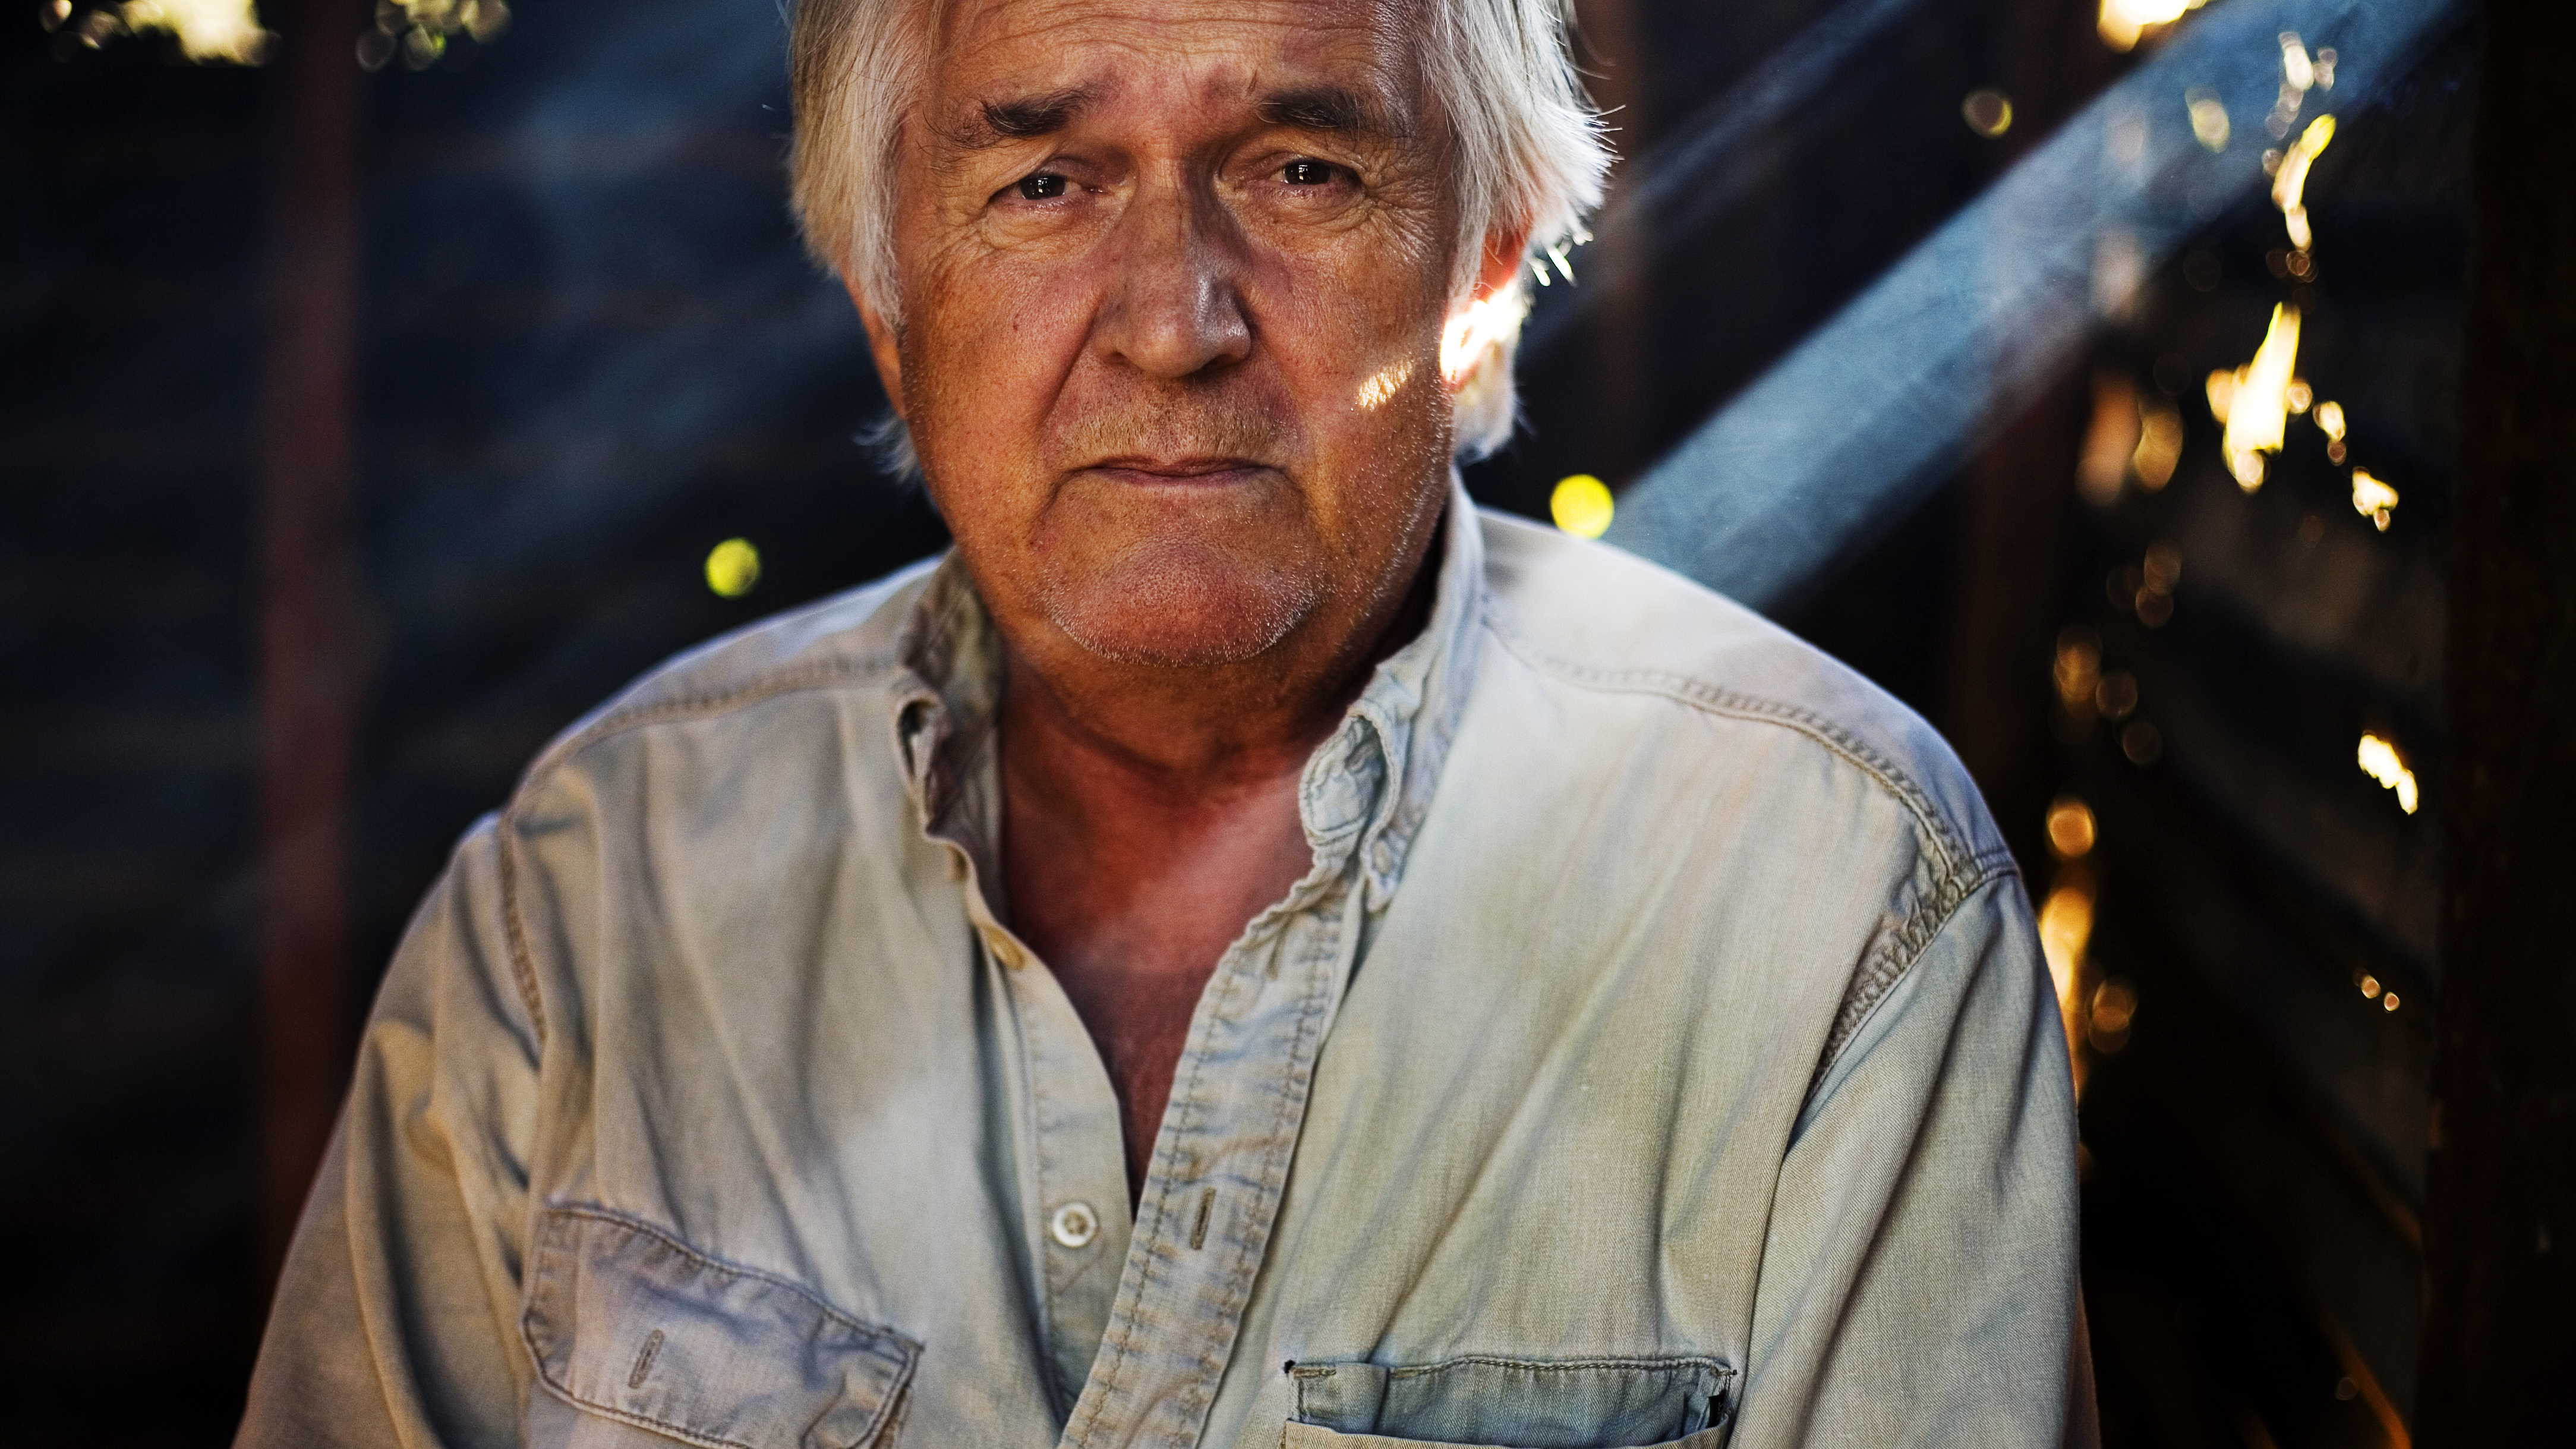 'Wallander' Author Henning Mankell On The Catastrophe Of Cancer